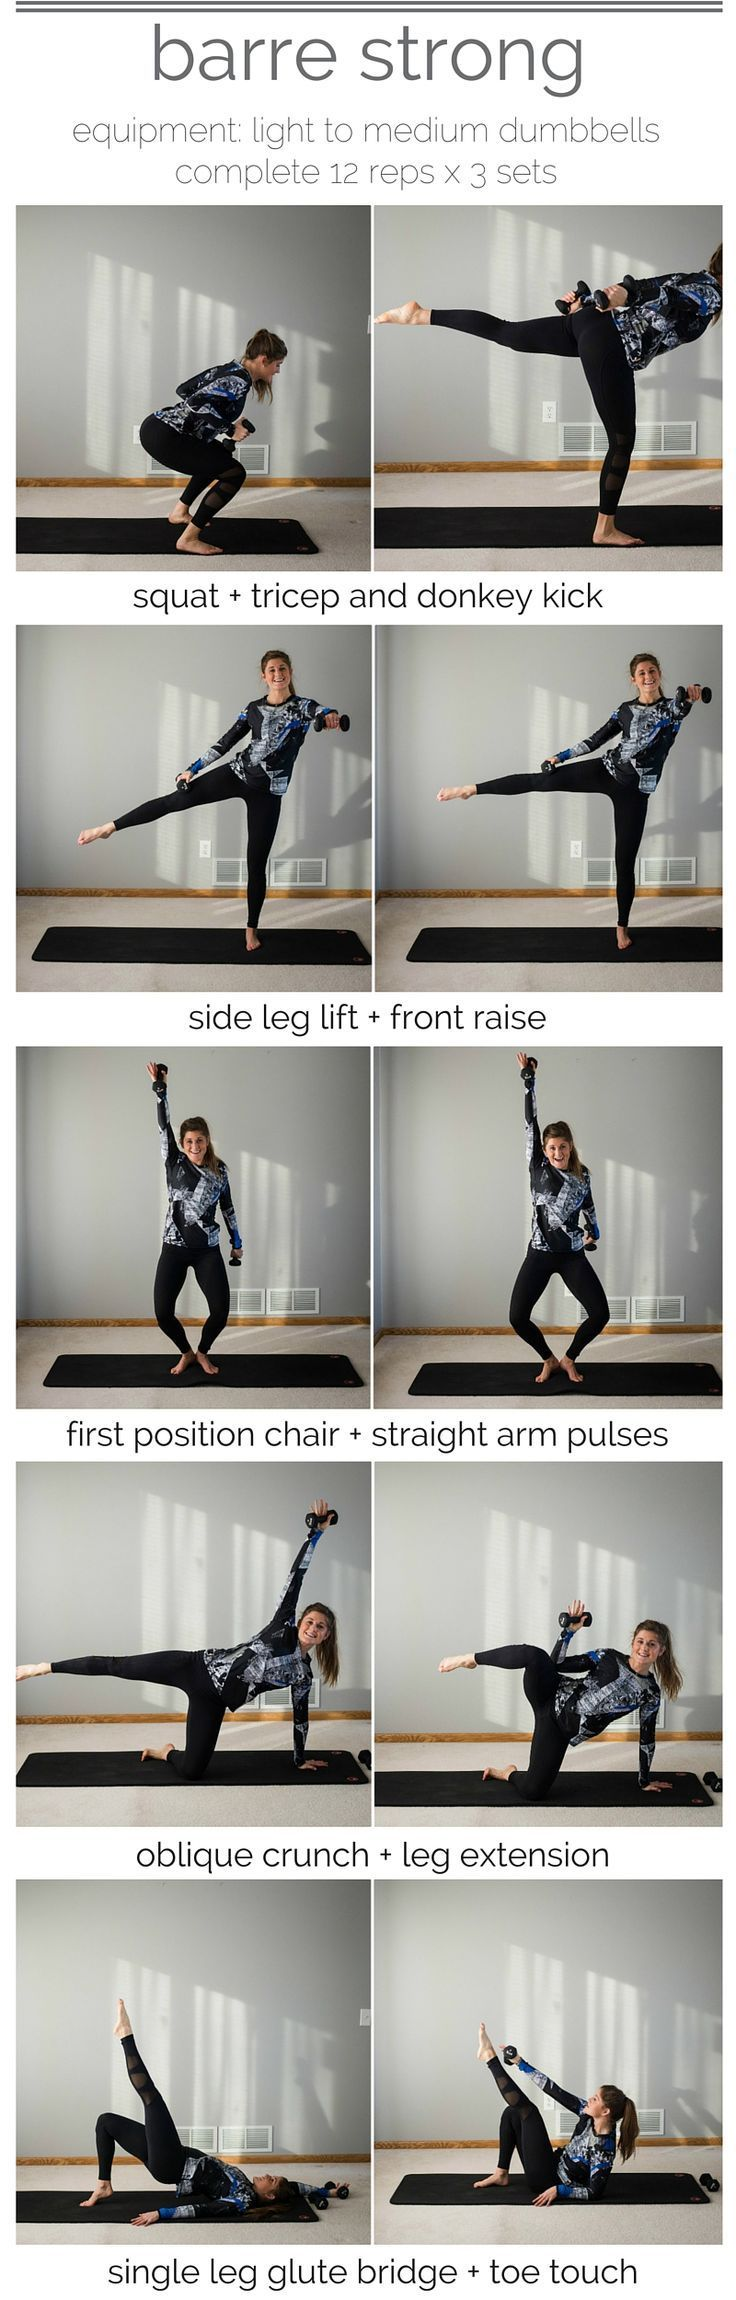 barre strong workout pin barre + strength training I barre workout I barre I strength training I workouts at home I workouts for women II Nourish Move Love #strengthtraining #weightlifting #workouts